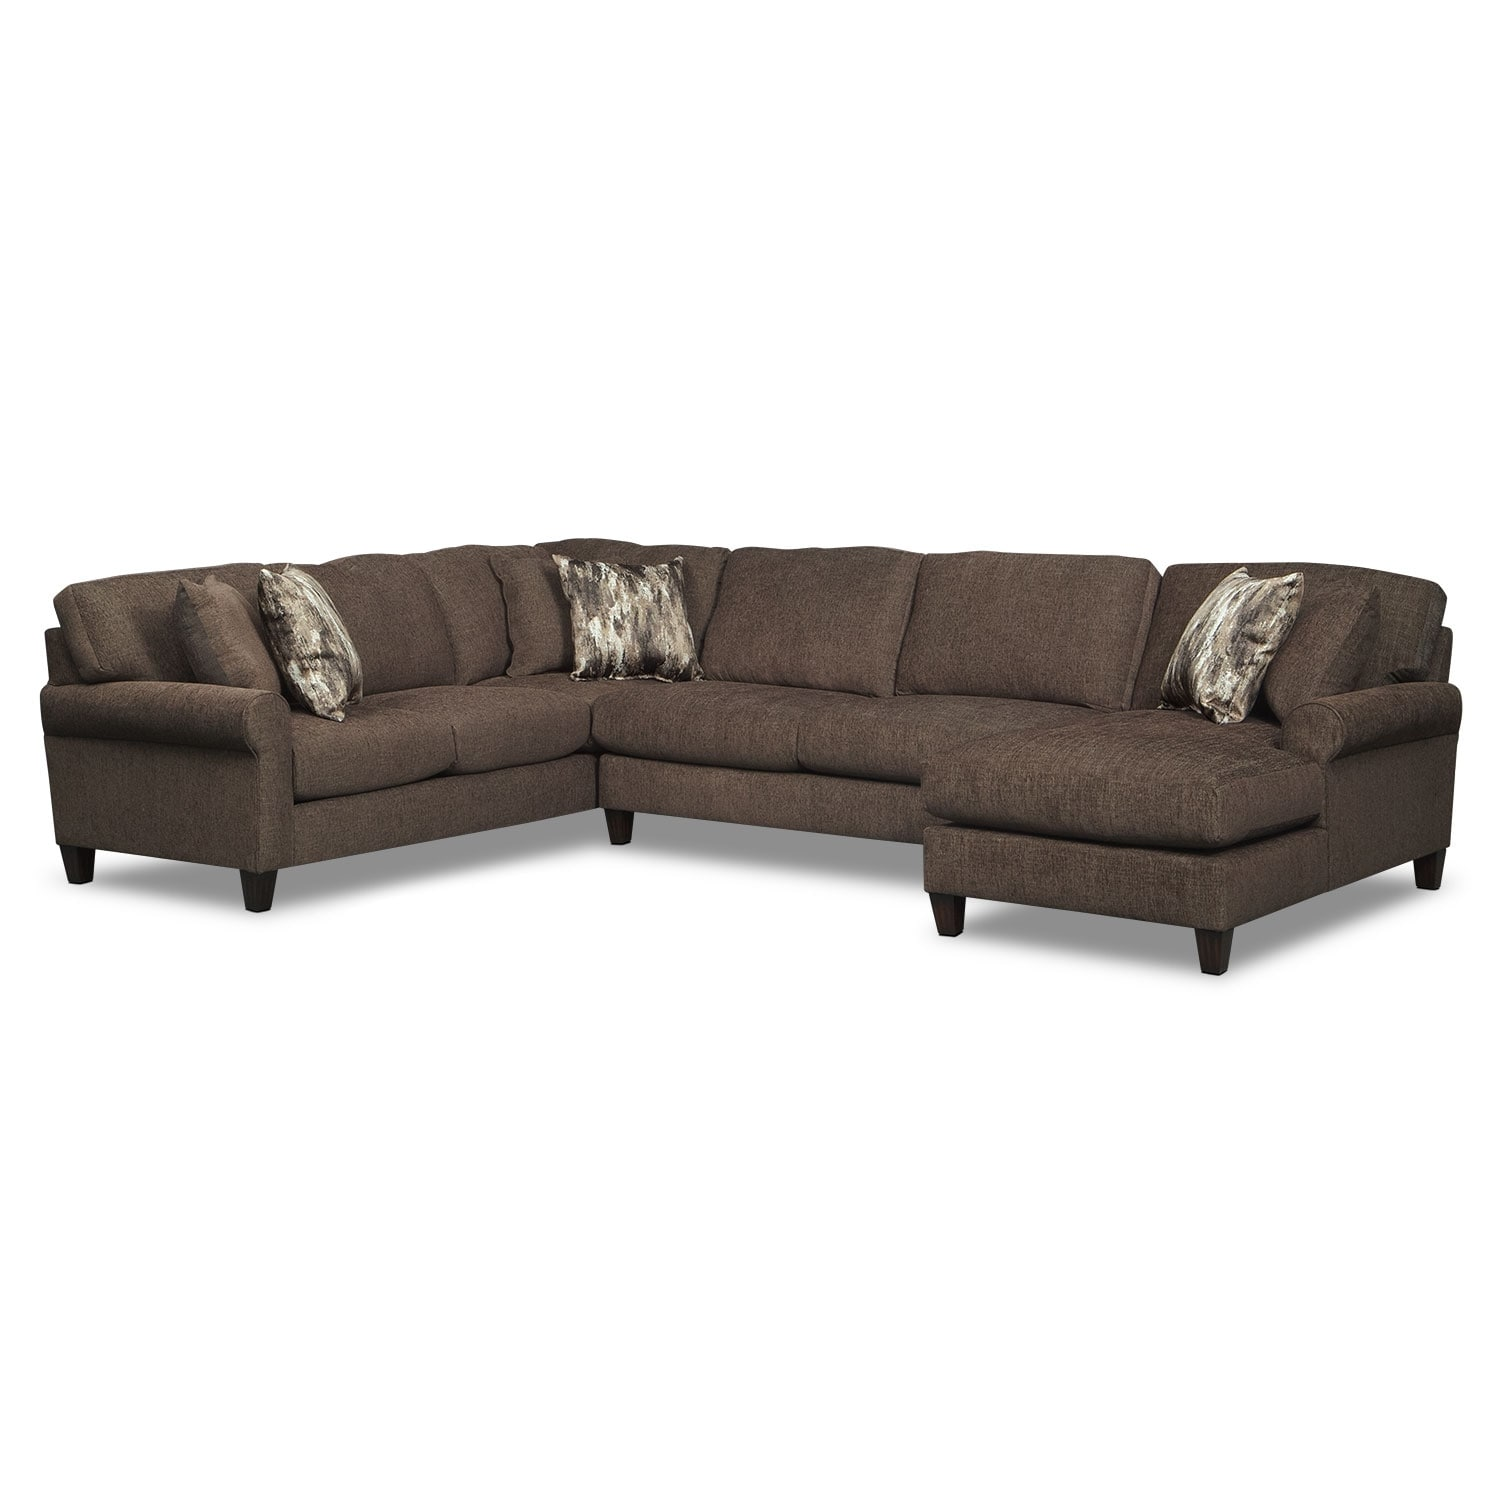 Karma 3-Piece Right-Facing Sectional - Smoke